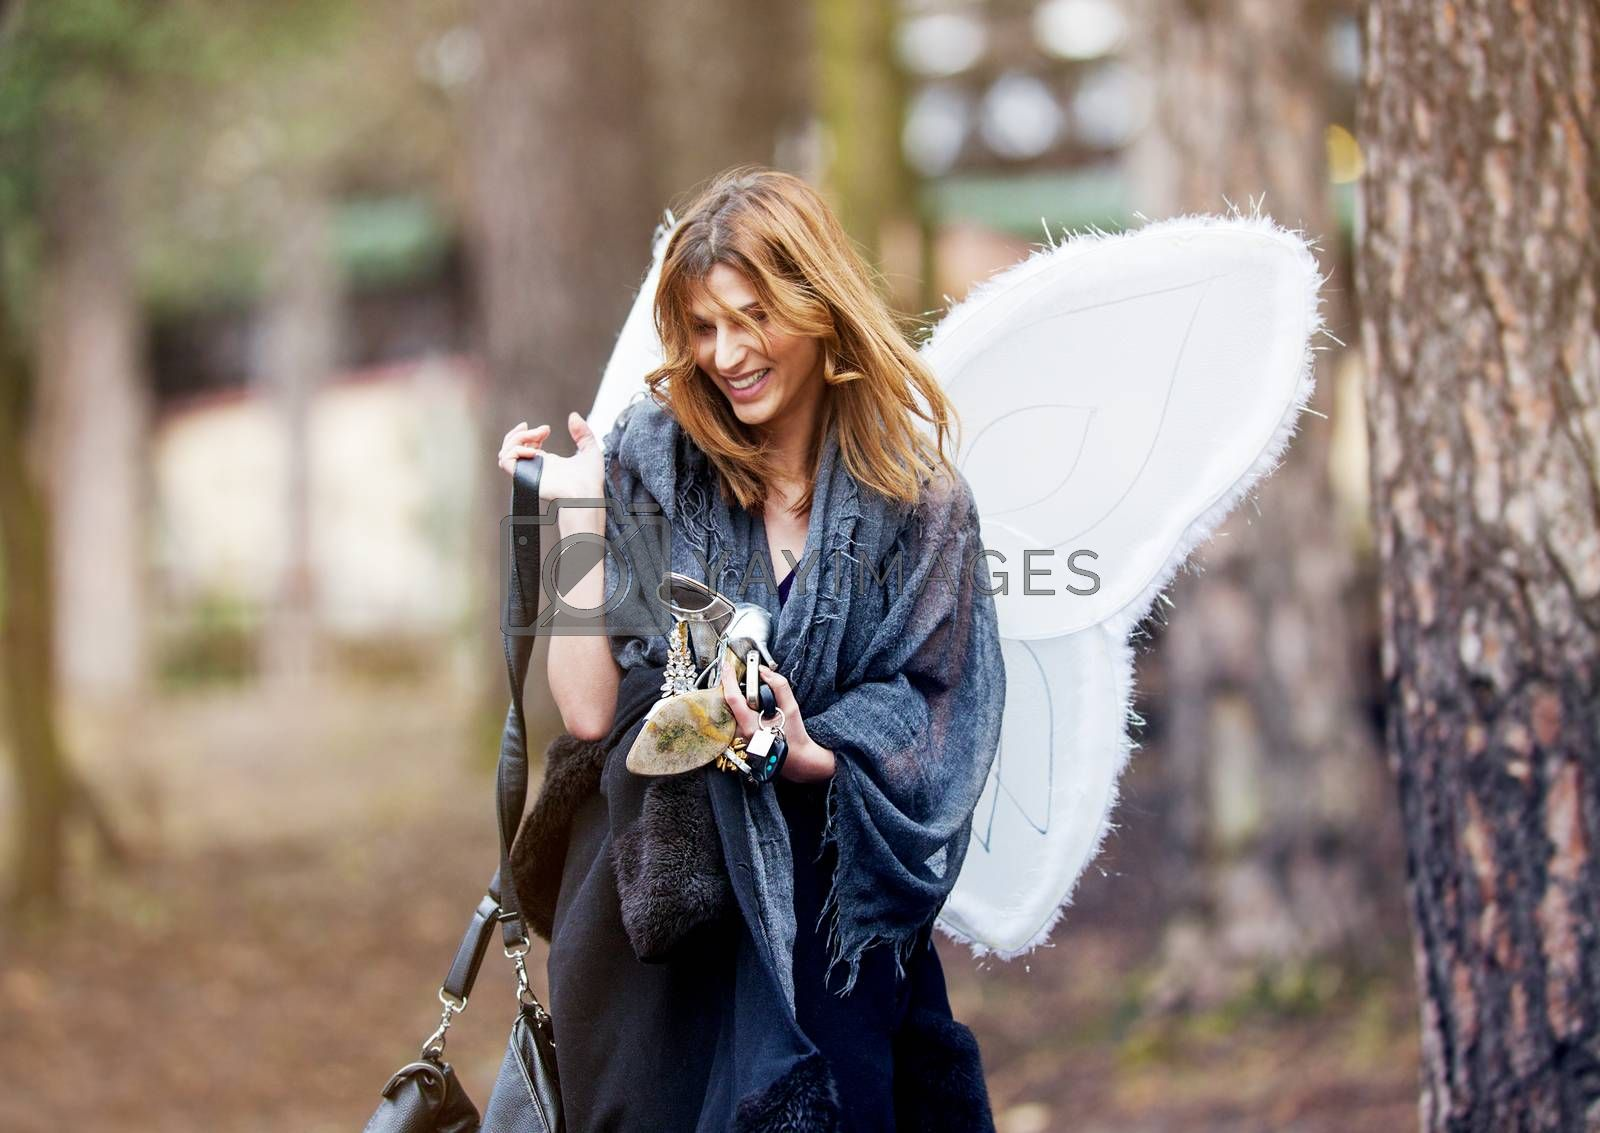 A beautiful happy smiling girl walking through the park with party angel wings and high heels in her hands.